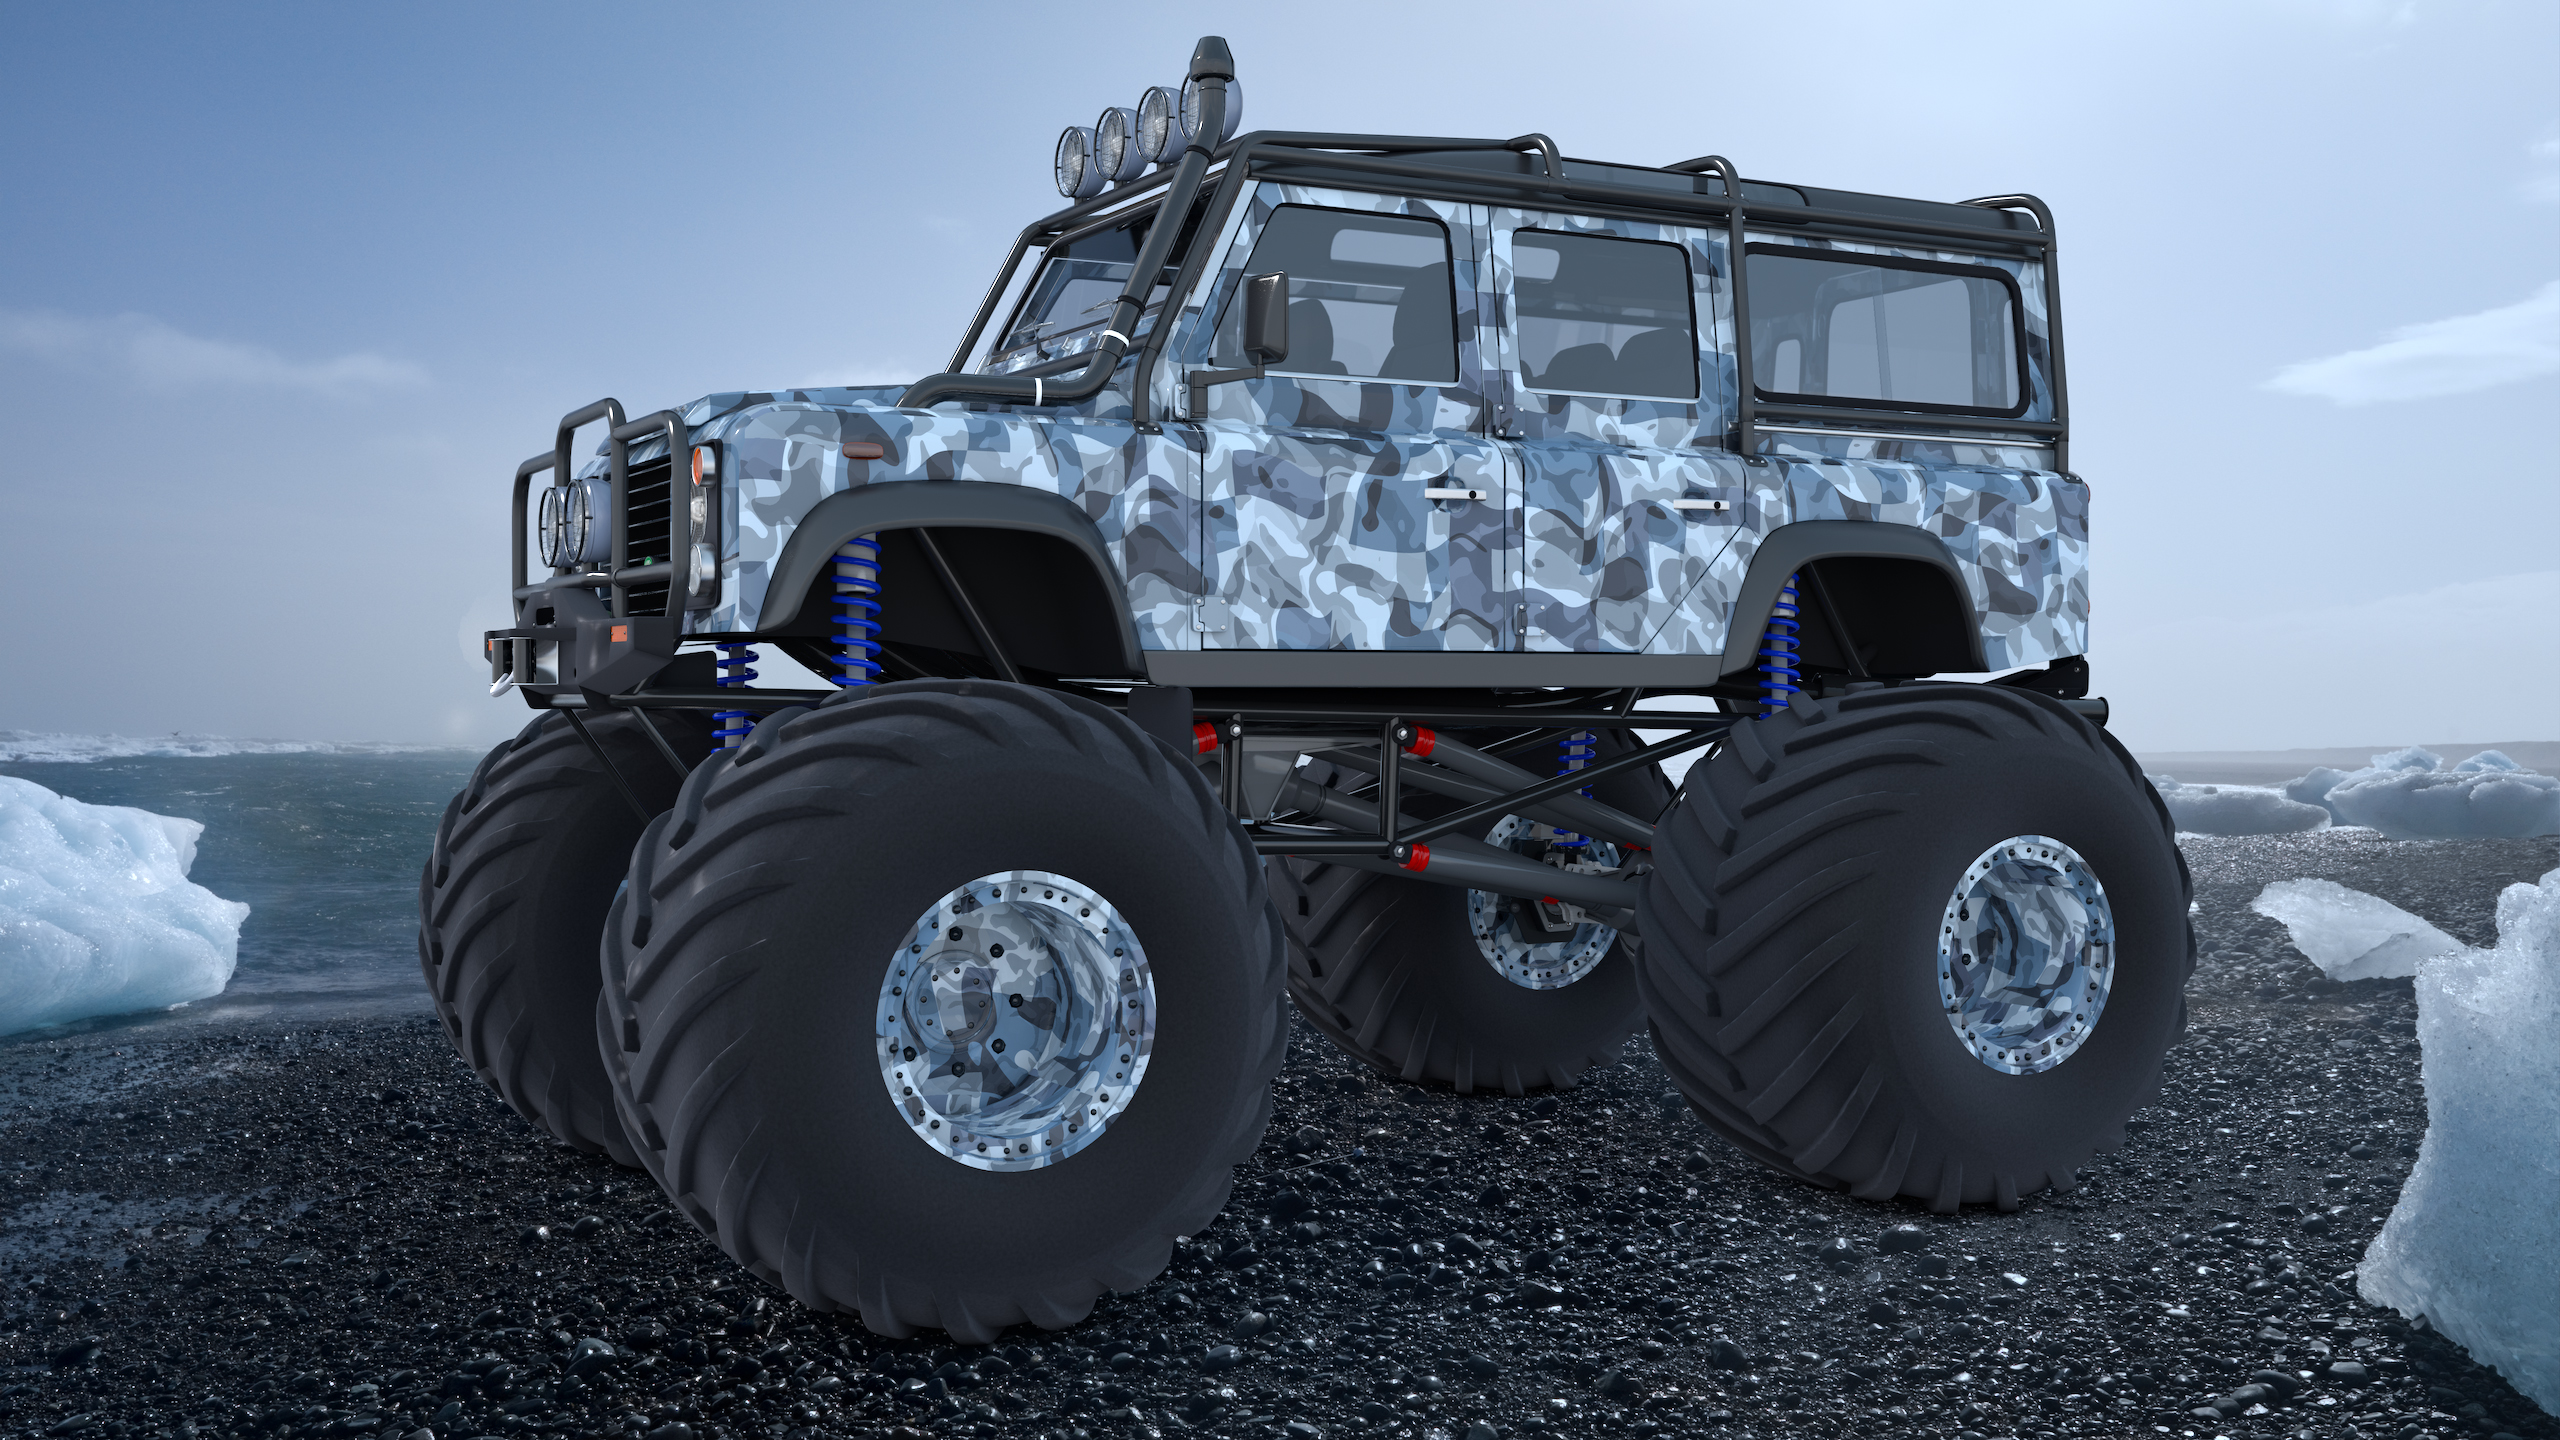 Jeep Truck >> Land Rover Defender Expedition by SamCurry on DeviantArt